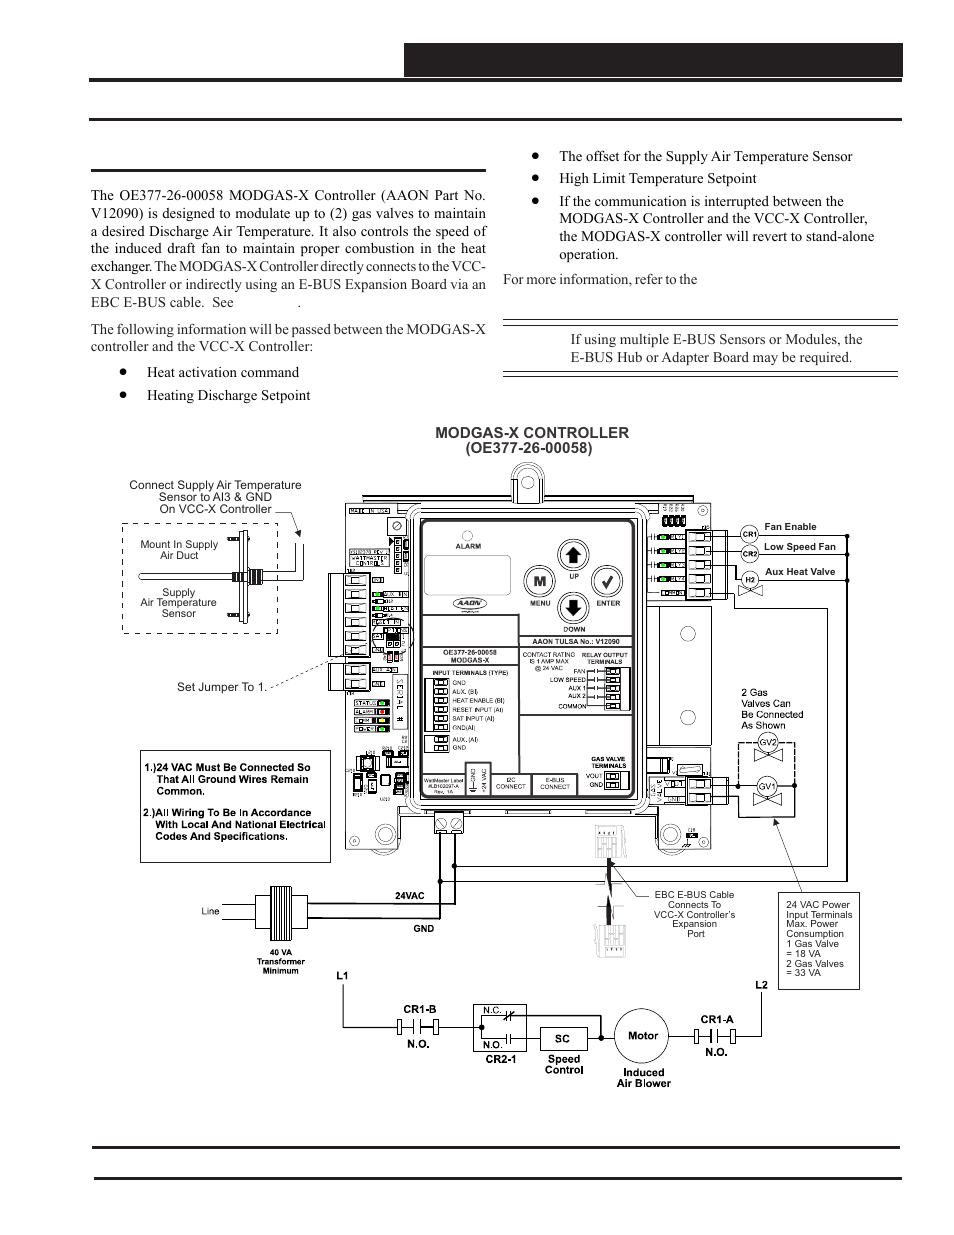 Modgas X Controller Wiring Vcc Technical Guide Orion Mac Valve Diagram System User Manual Page 47 120